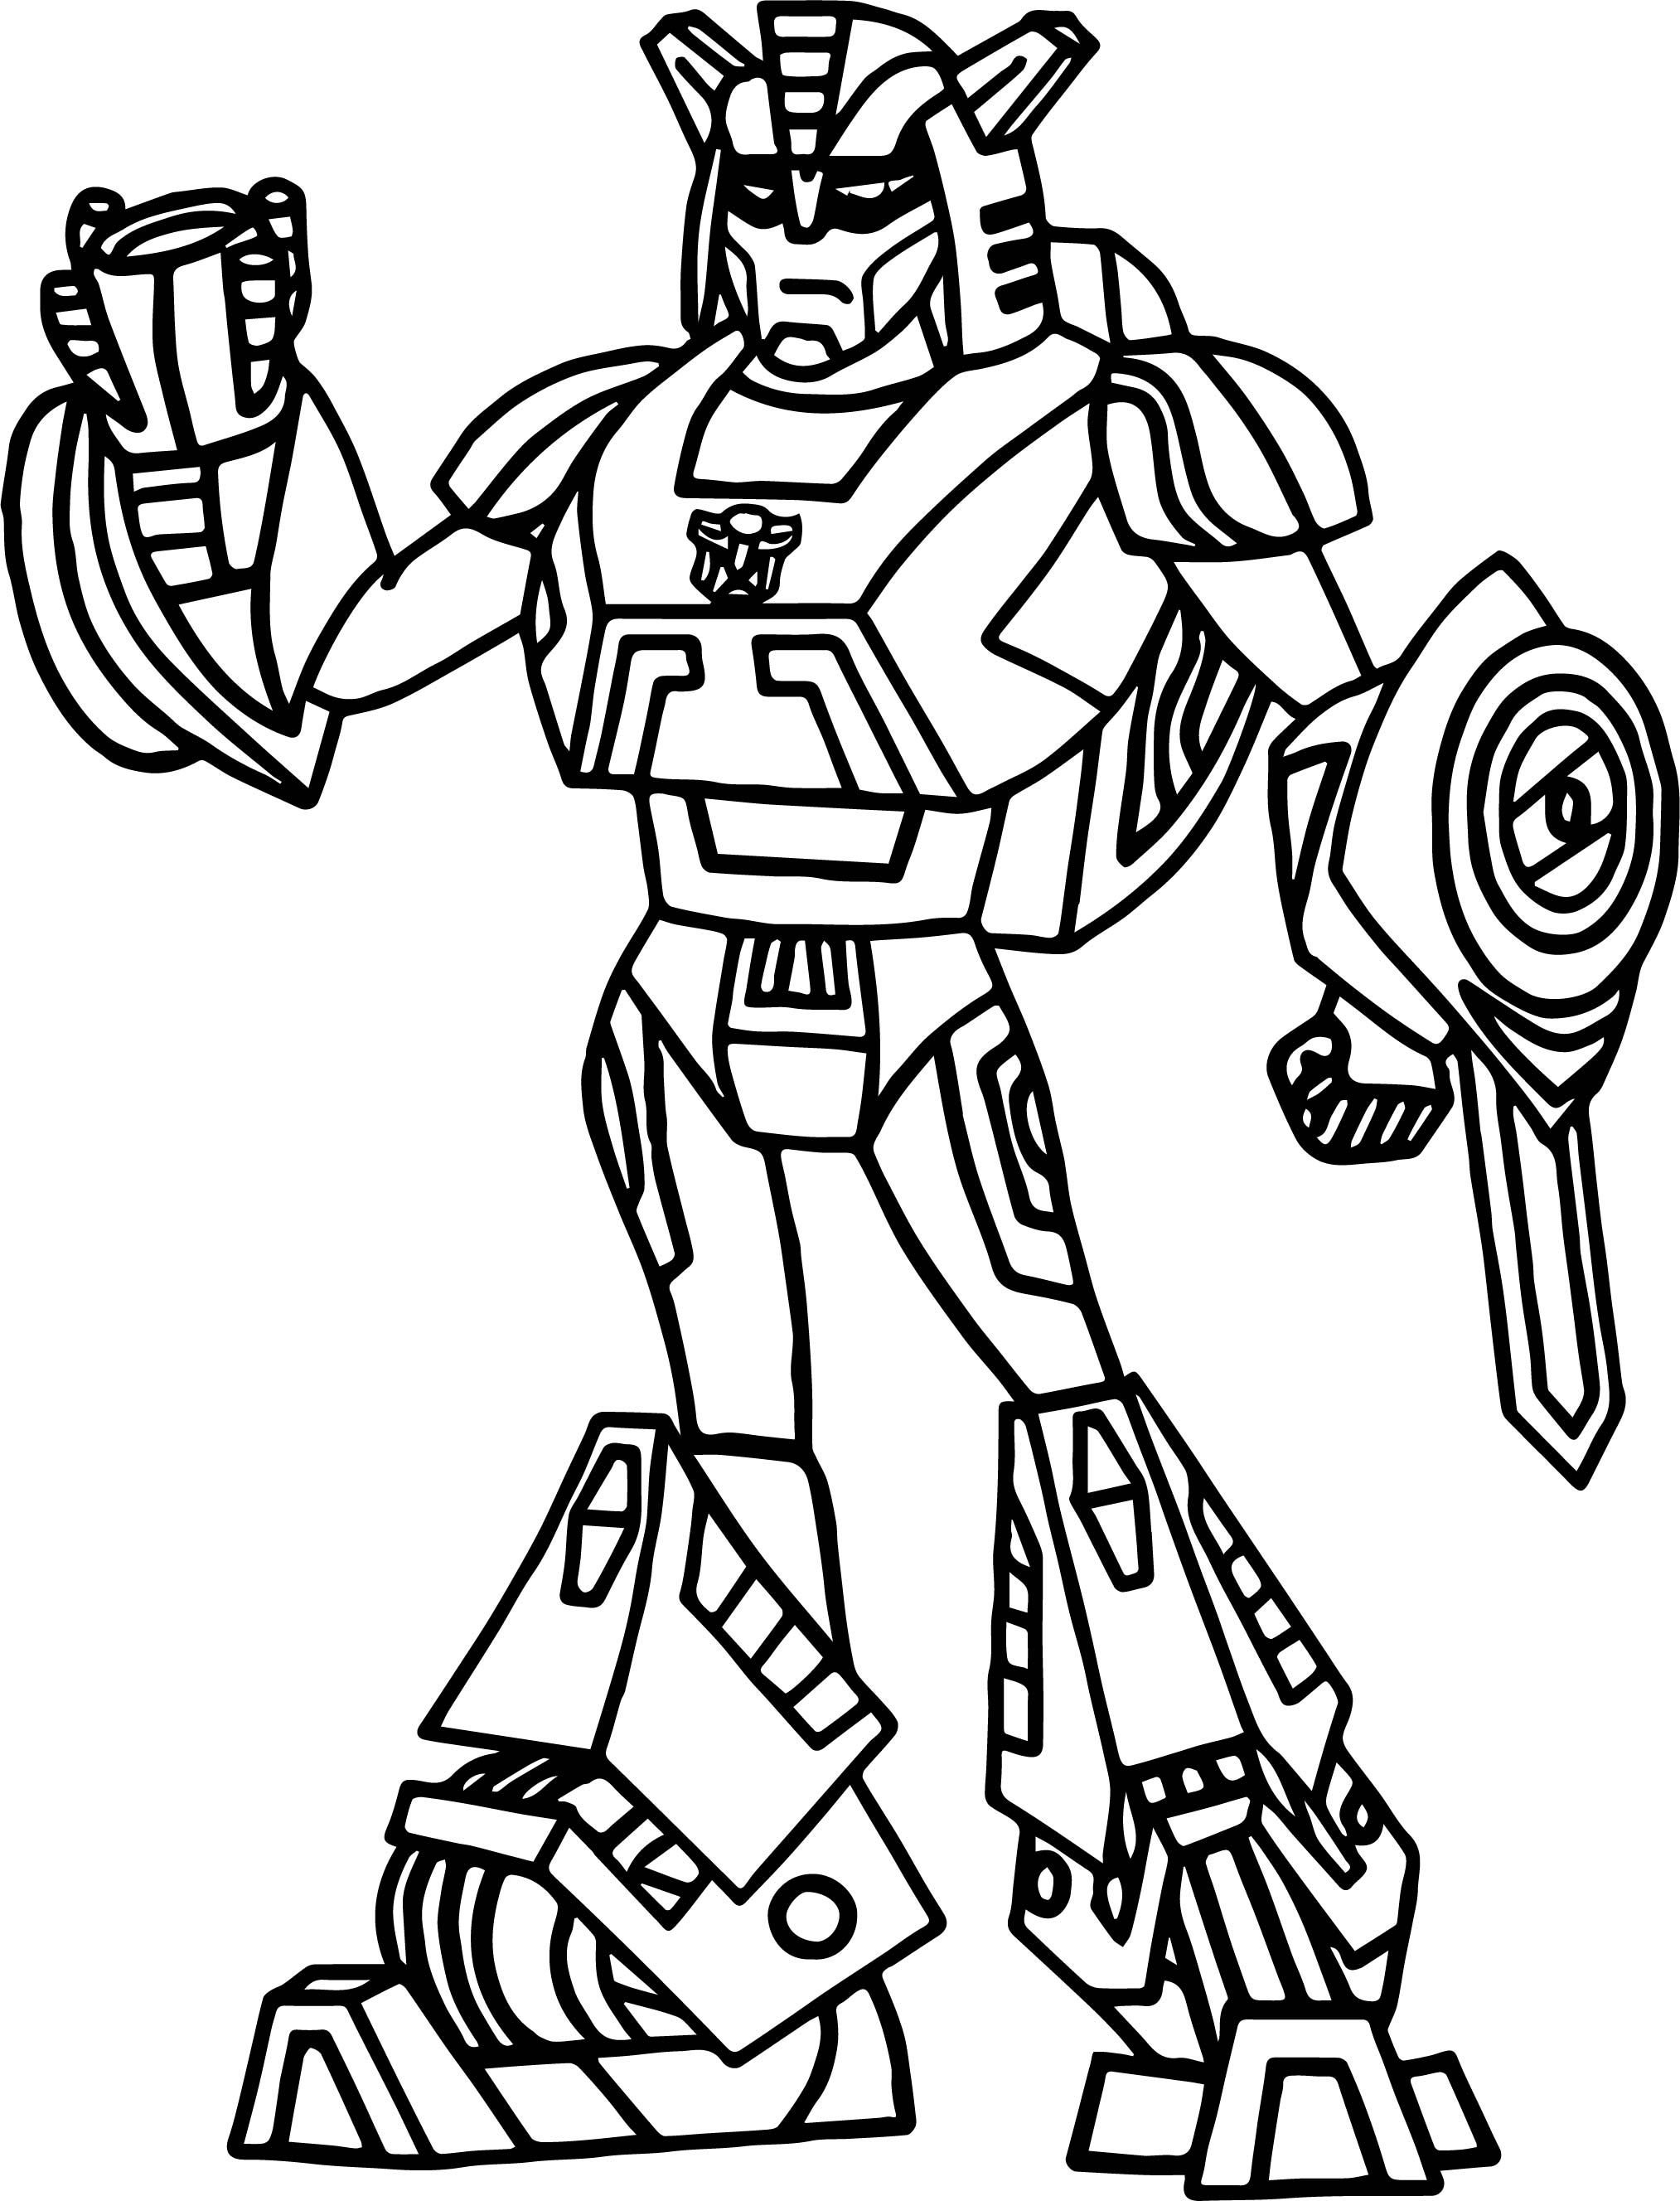 Fire transformers coloring page for Transformer coloring pages